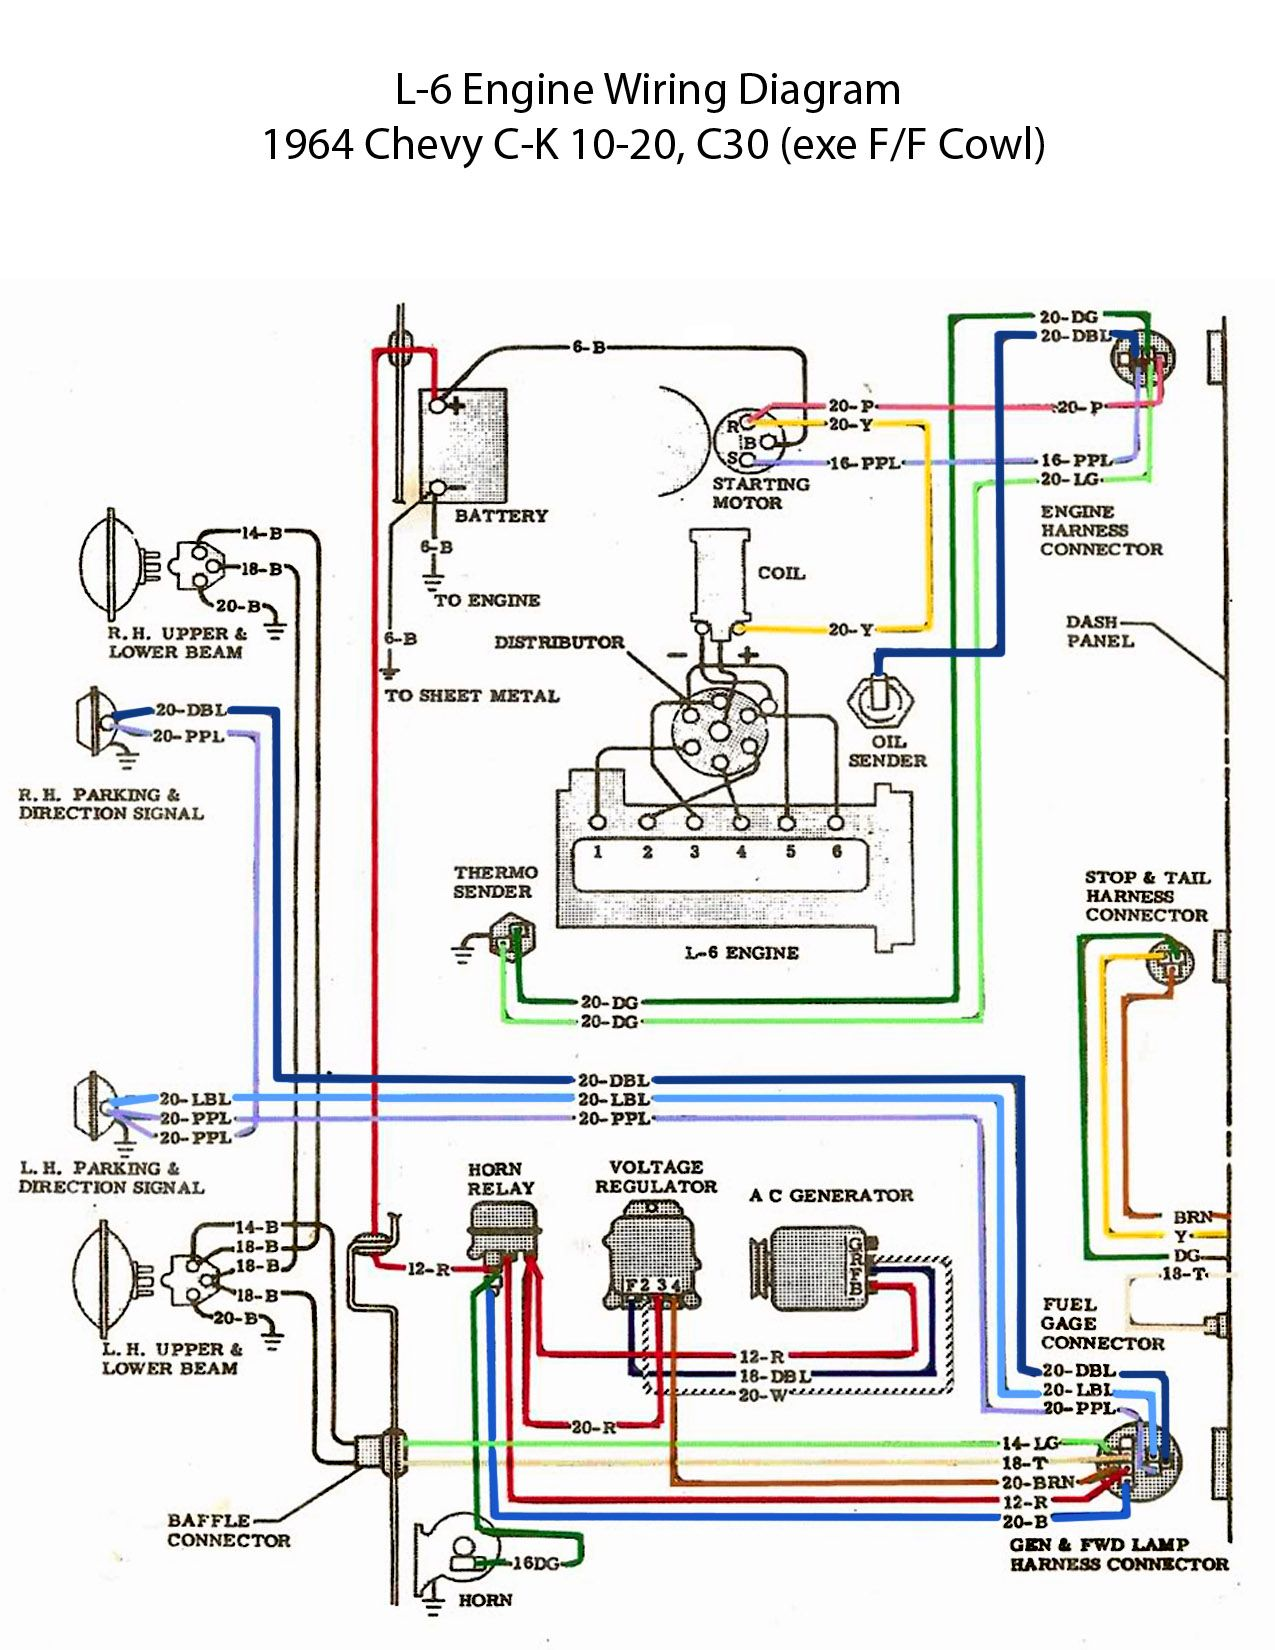 electric l 6 engine wiring diagram '60s chevy c10 wiring light switch wiring diagram electric l 6 engine wiring diagram